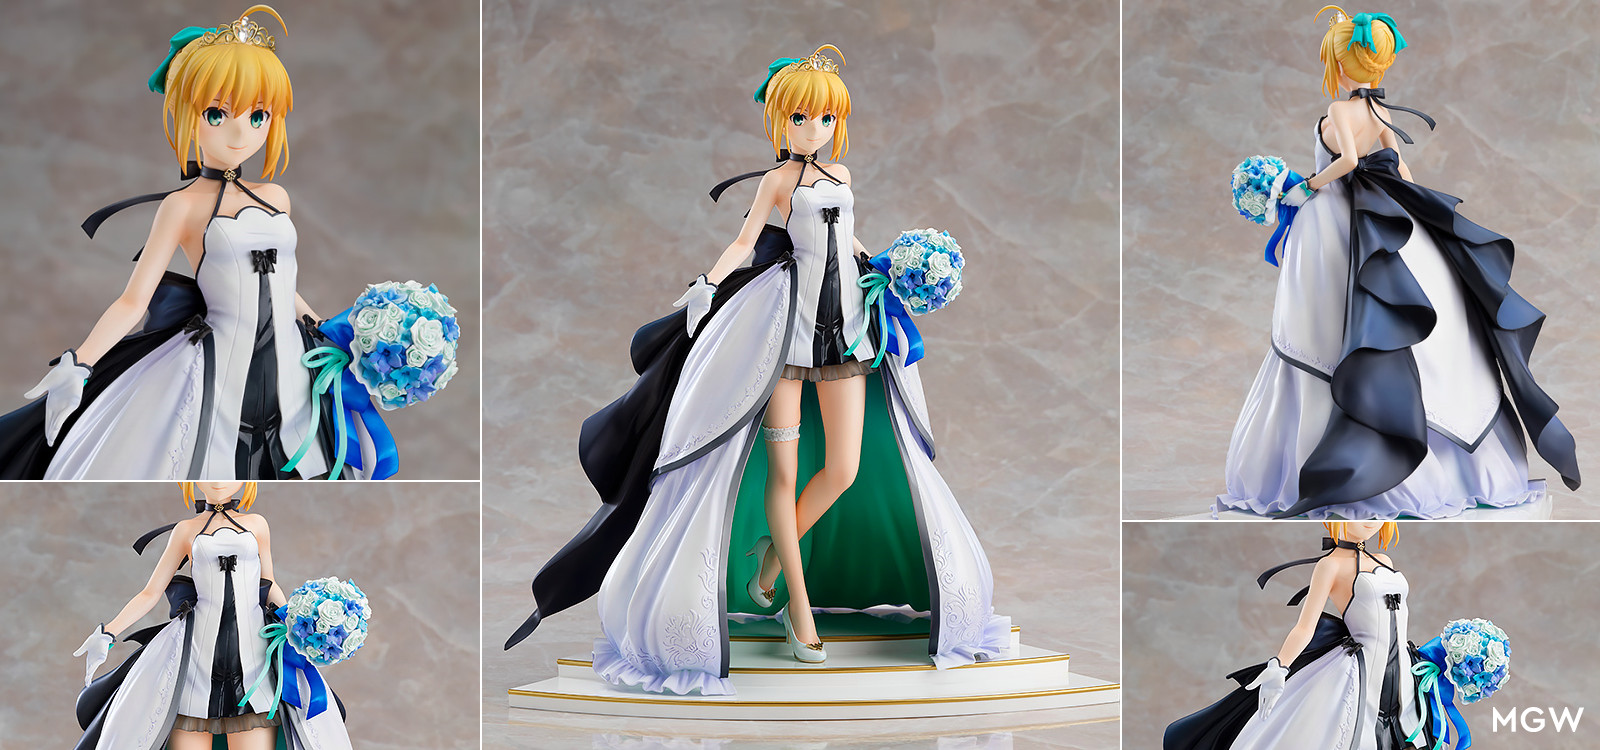 Saber ~15th Celebration Dress Ver.~ by Good Smile Company from Fate/stay night MGW Header